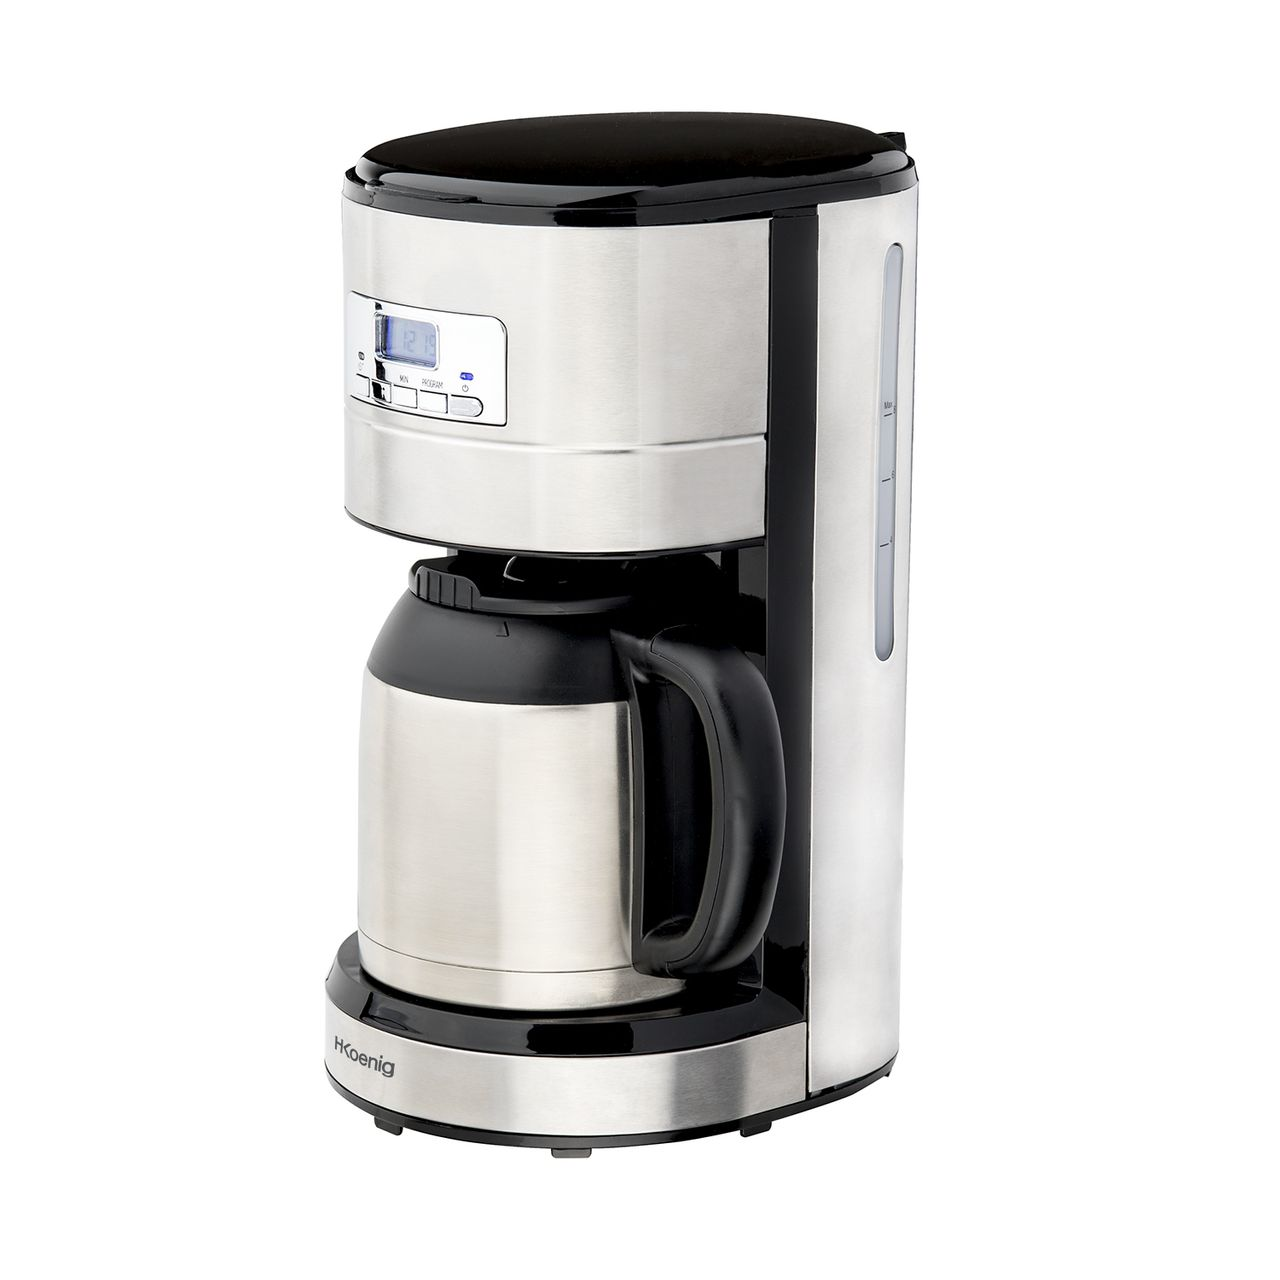 h koenig filter coffee maker programmable 1 2 l keep warm function clock 1000 w ebay. Black Bedroom Furniture Sets. Home Design Ideas